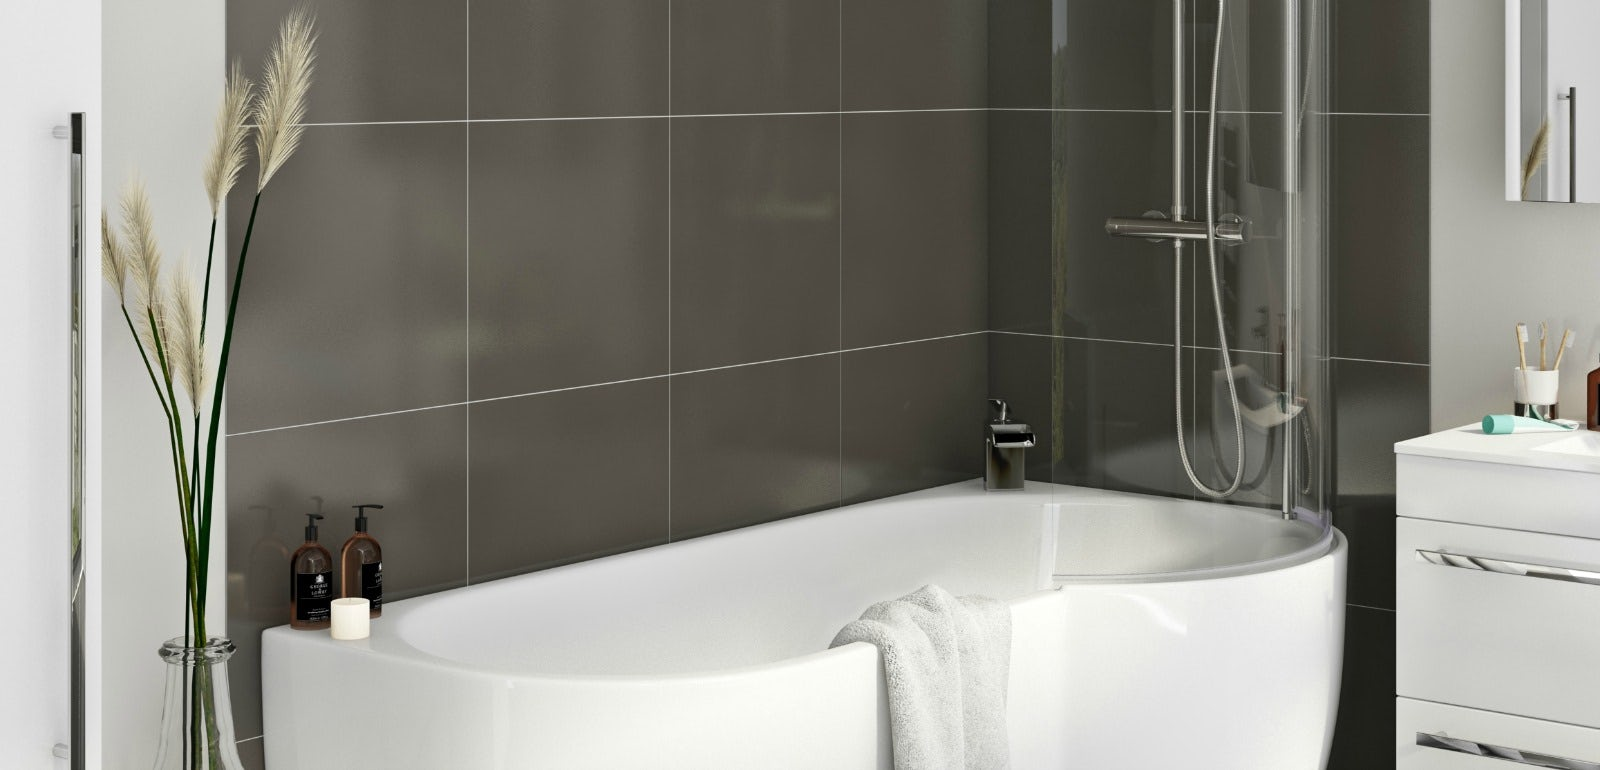 average cost to build a new bathroom - rukinet